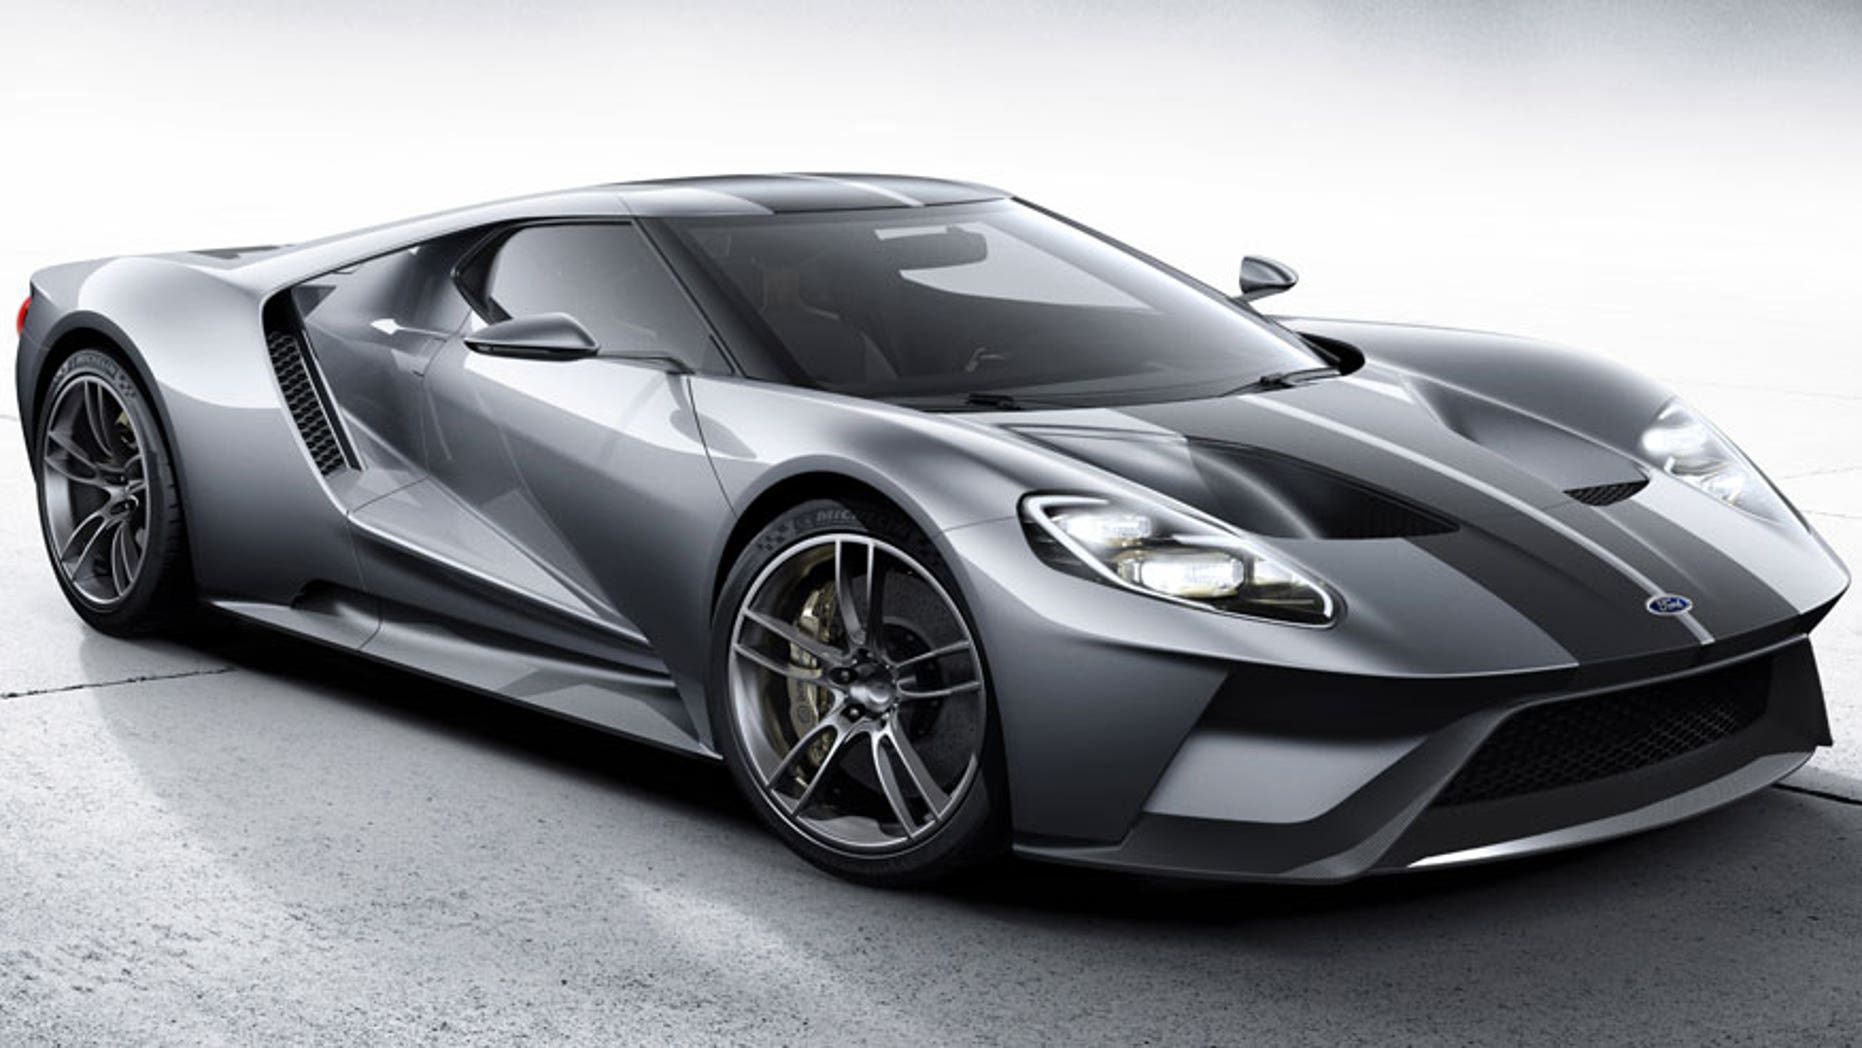 Ford Gt To Be Built By Racing Outfit Multimatic Motorsports